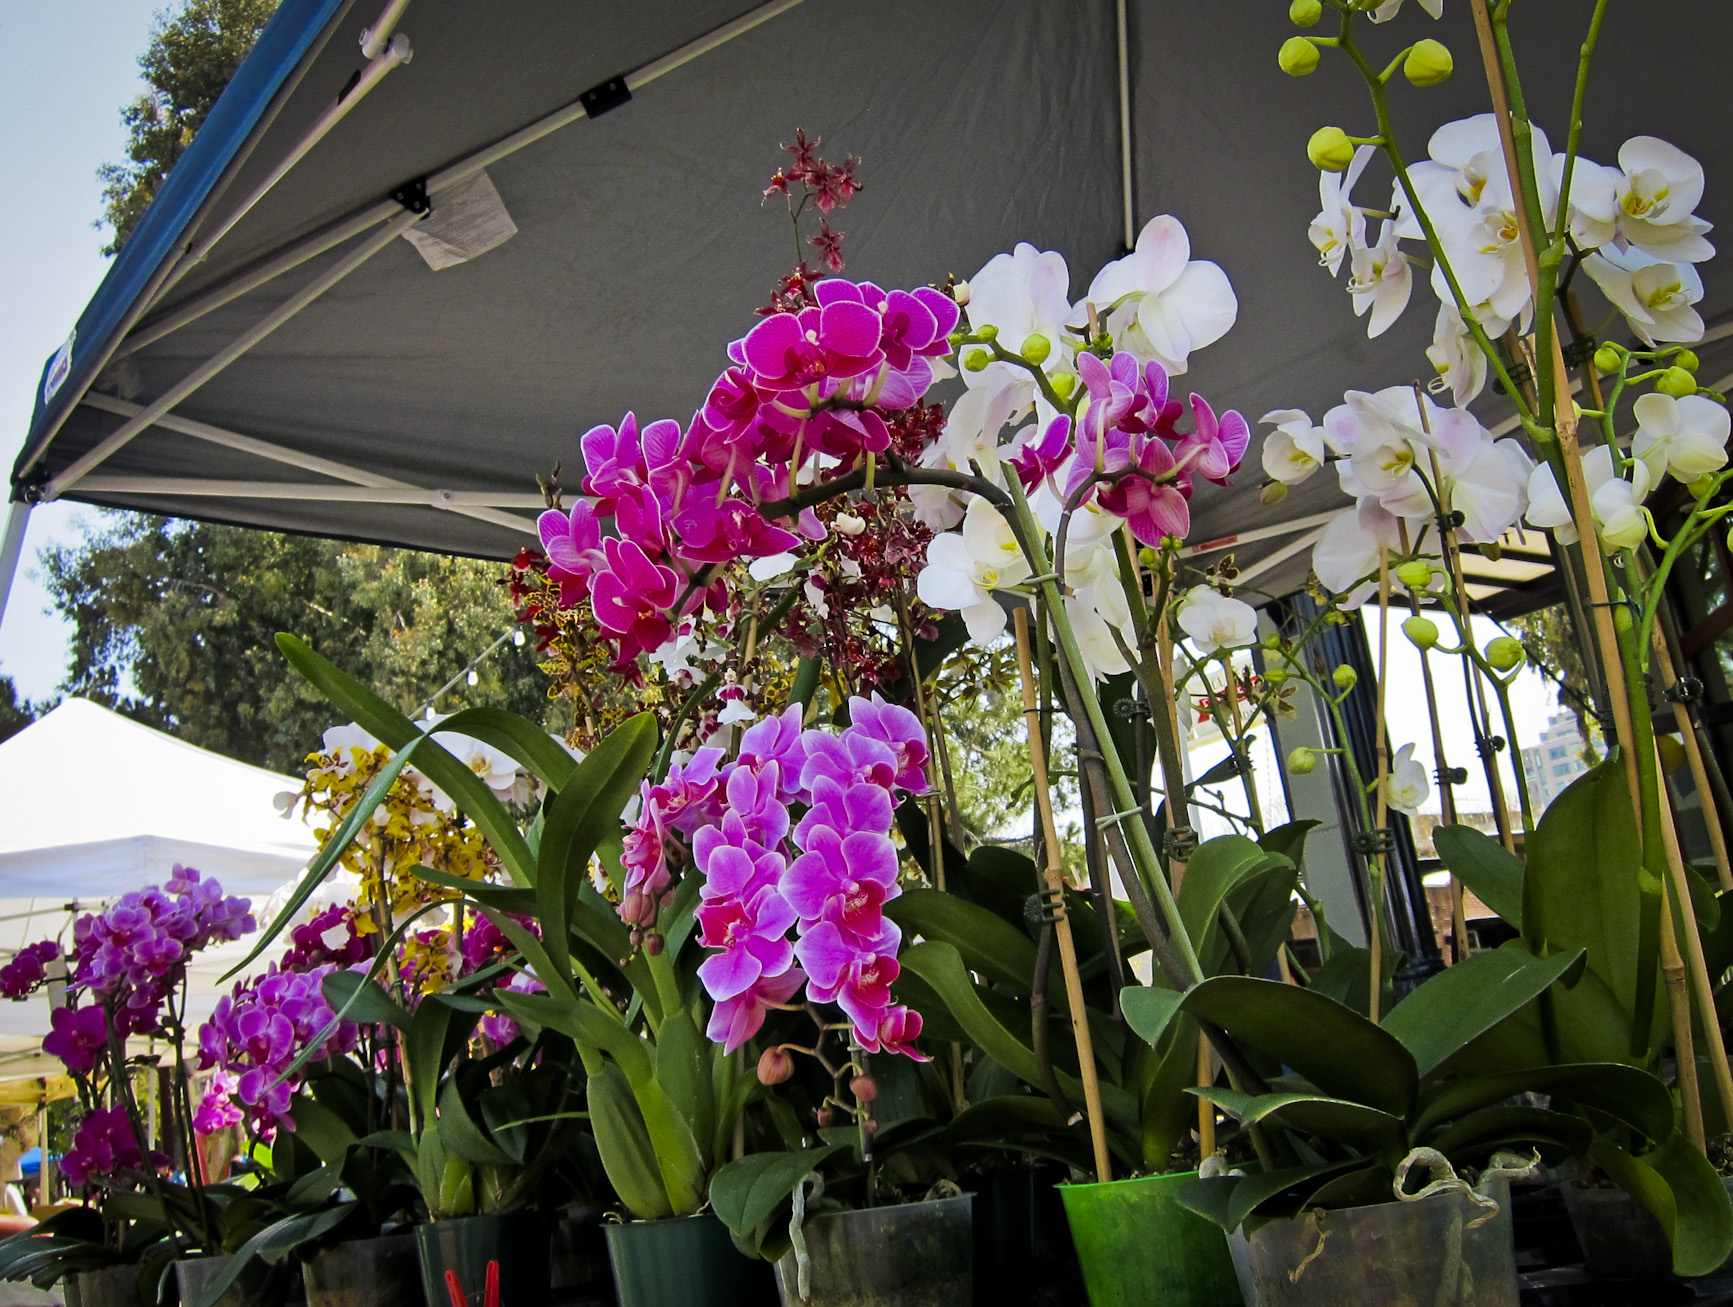 Photo: Farmers Market in downtown San Jose-San Pedro Square Market-Great family dining and entertainment in downtown San Jose.Unique restaurants,farmers market and live music.Catch Enjoy lunch or brunch in the Plaza of the Peralta Adobe. Experience the Farmer's market every Saturday.San Pedro Square Market is a fun place to spend time with family and friends.